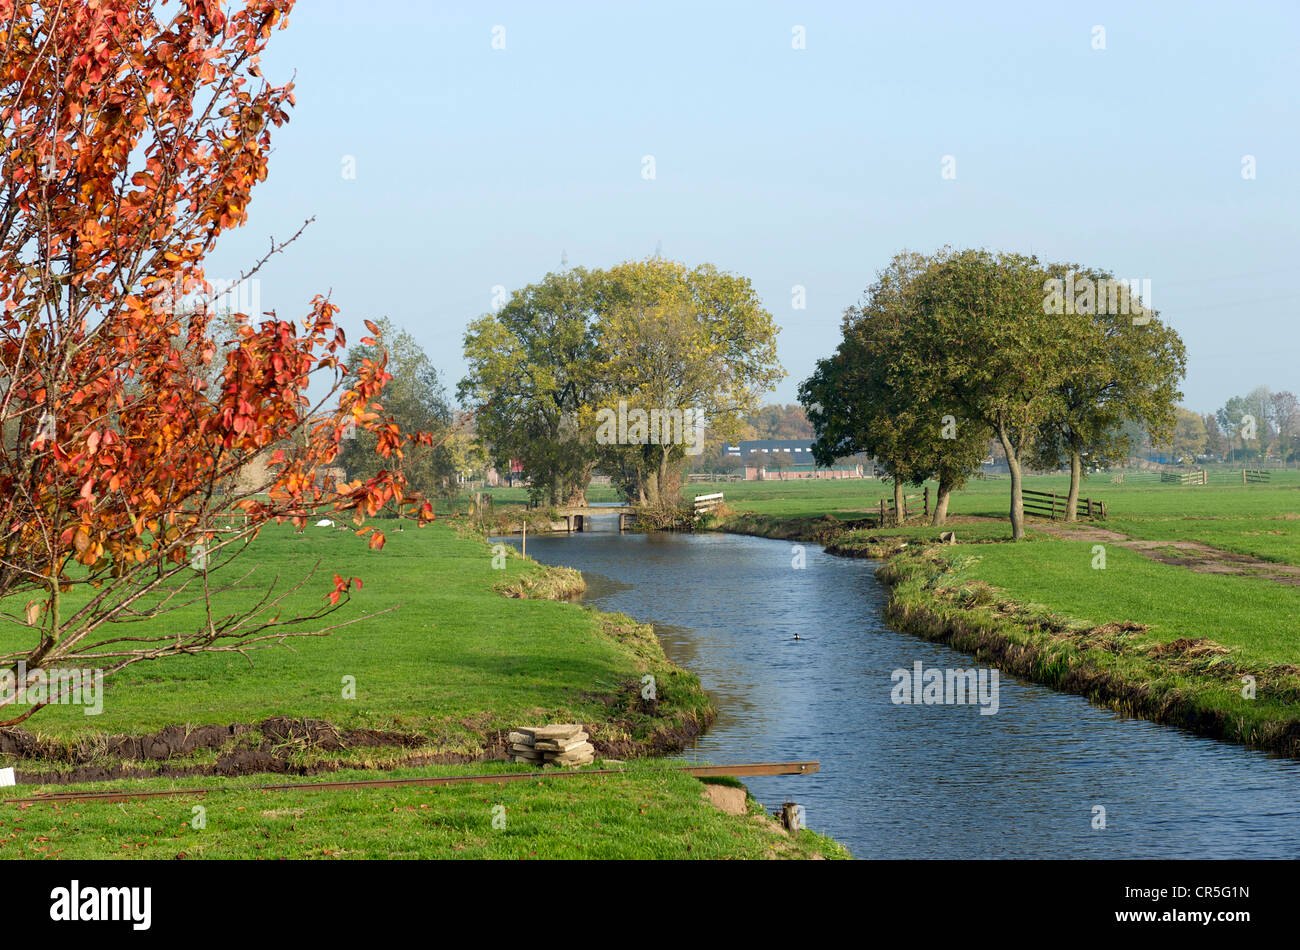 Netherlands, South Holland Province, polder around Rotterdam - Stock Image